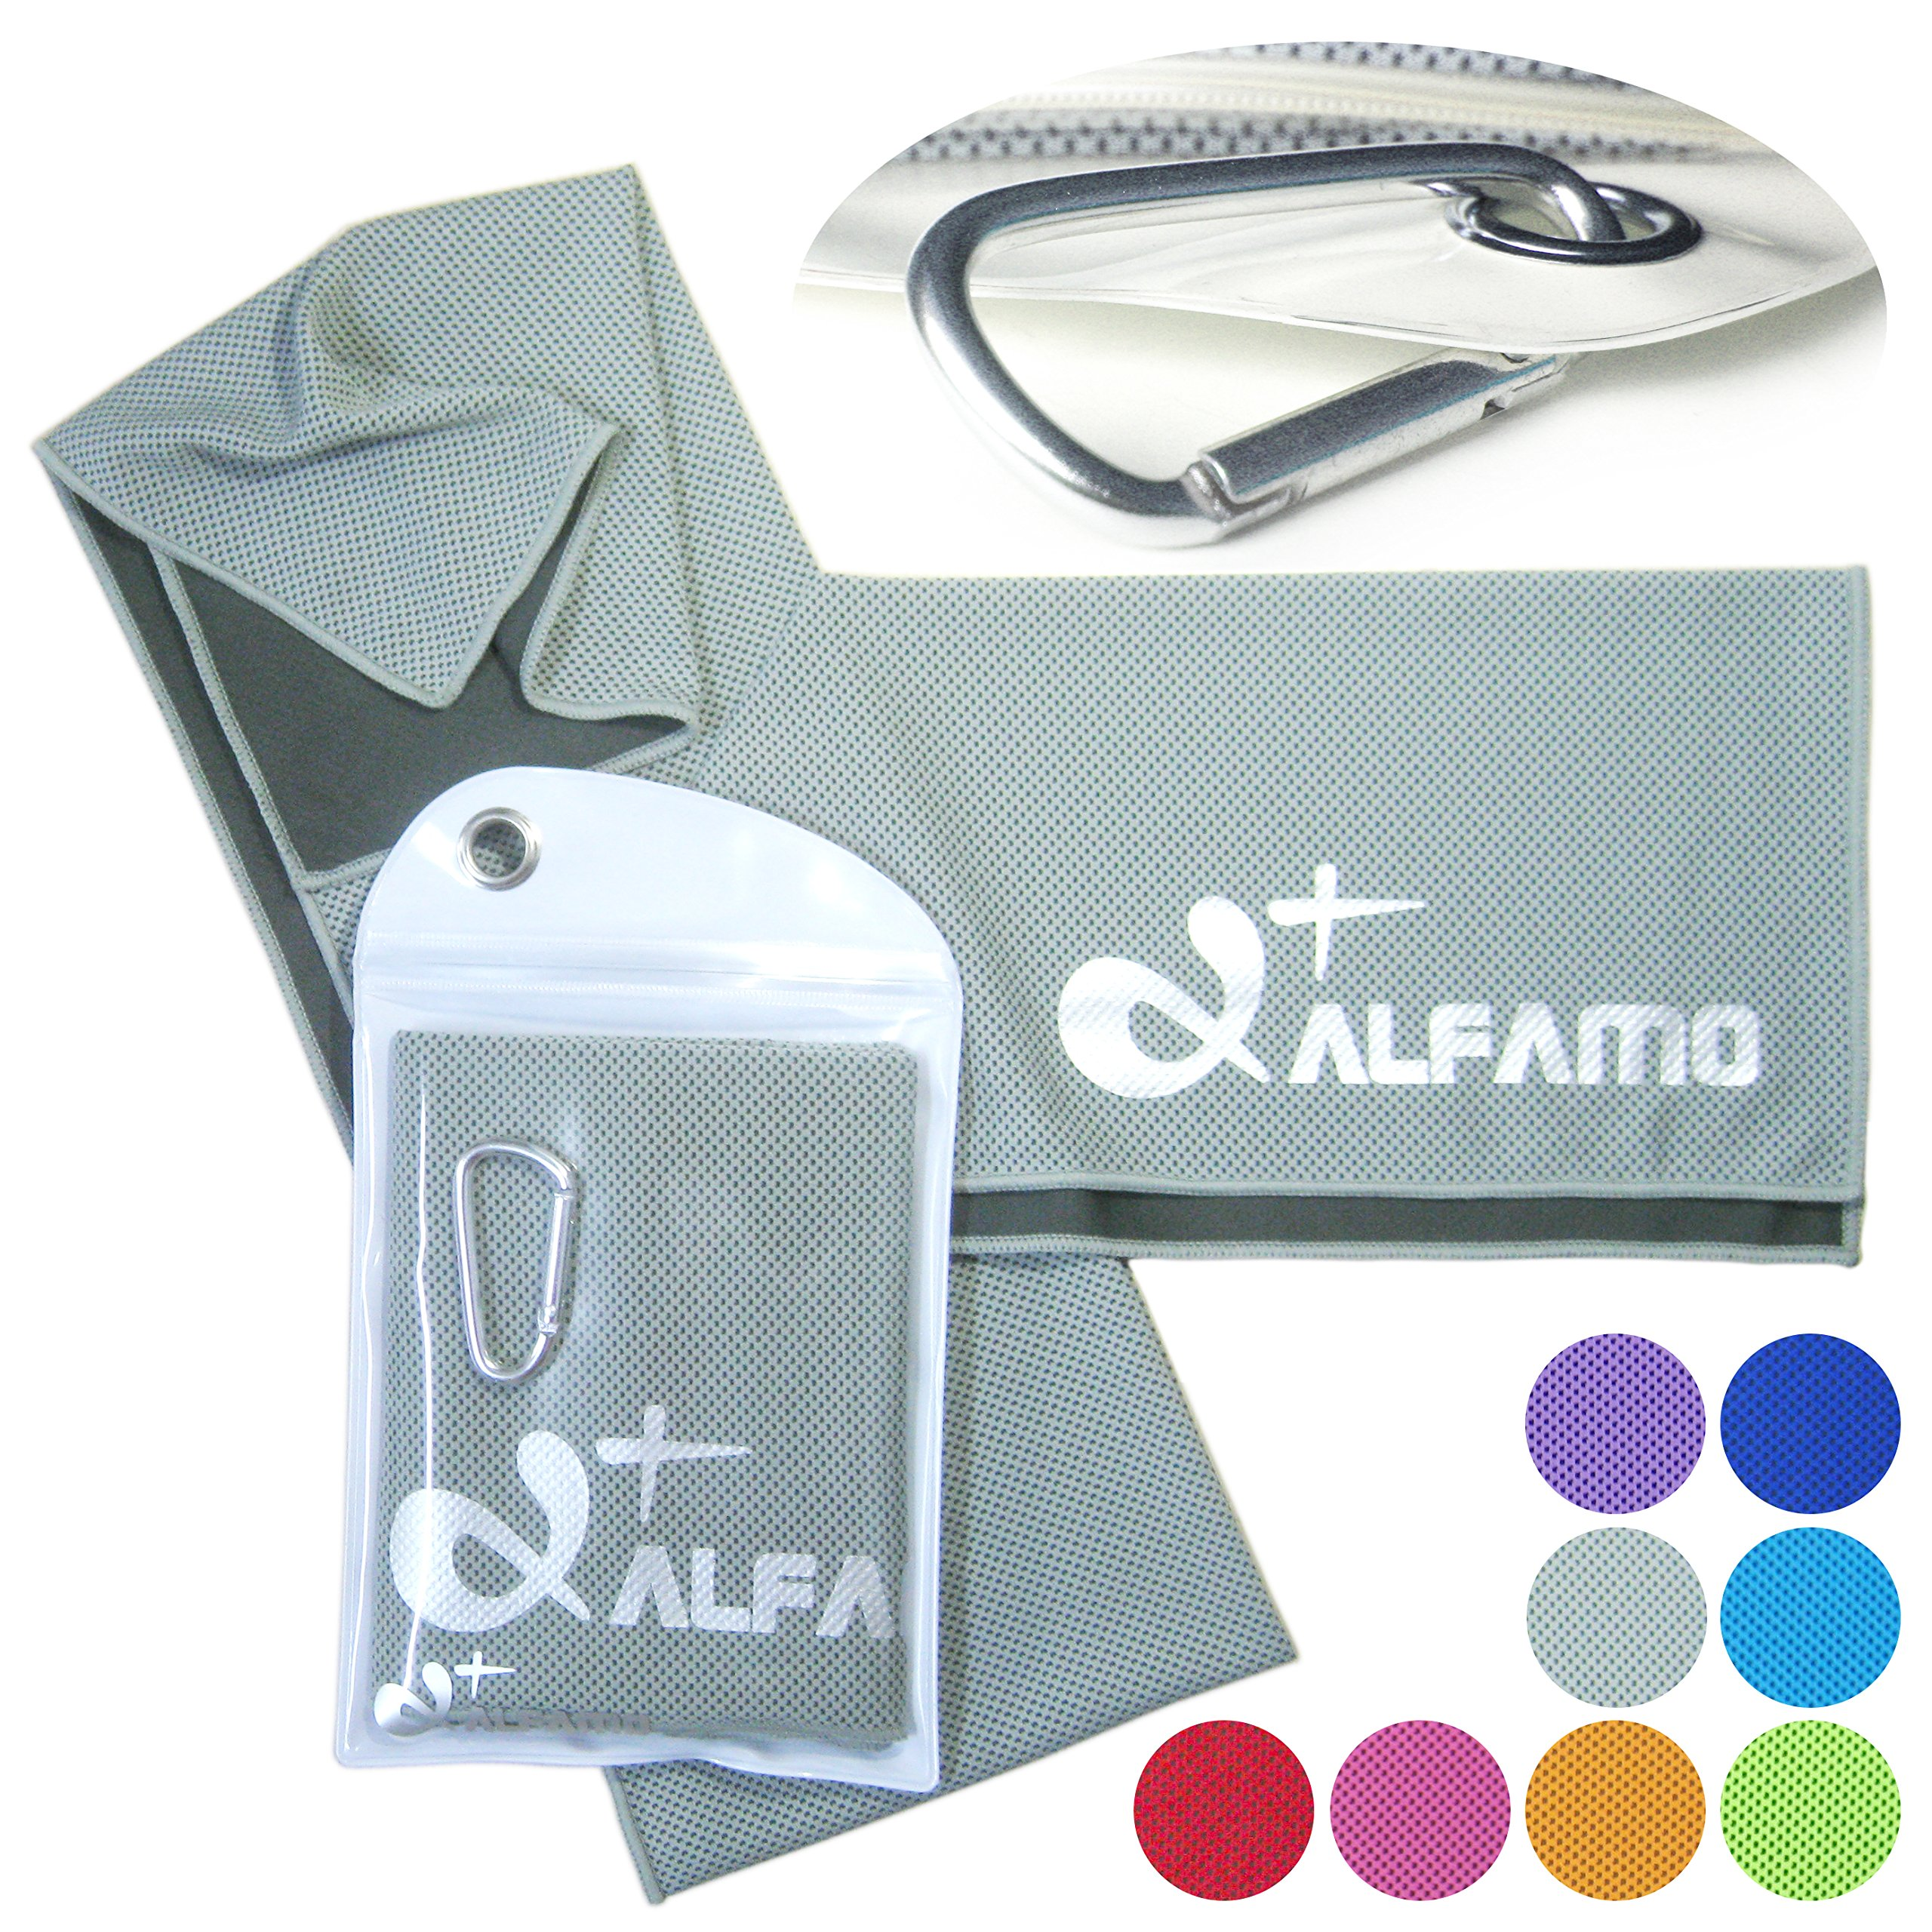 La Fitness With Towel Service: Alfamo Cooling Towel For Sports,